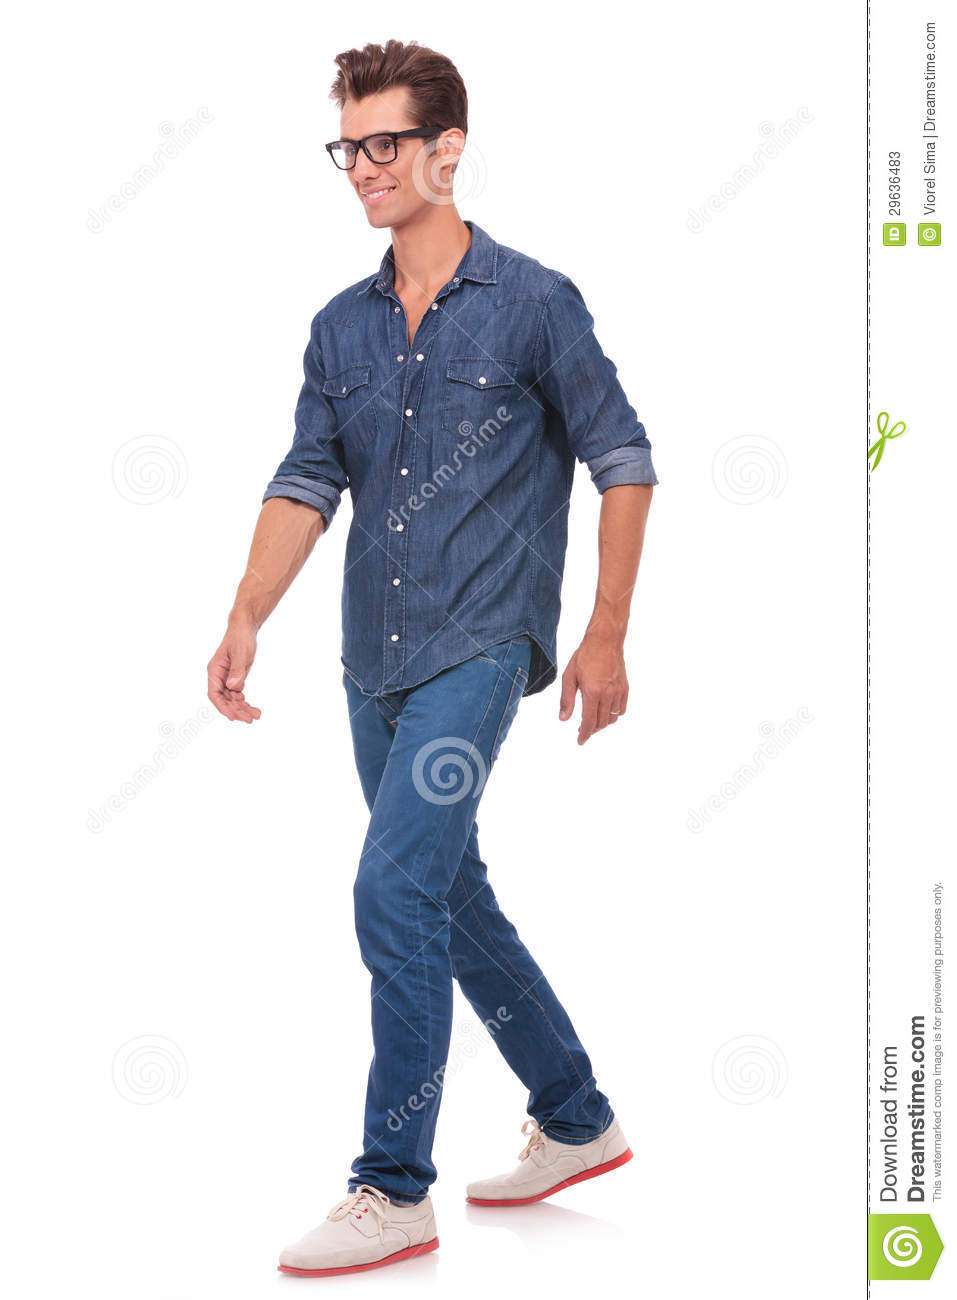 how to walk attractive man